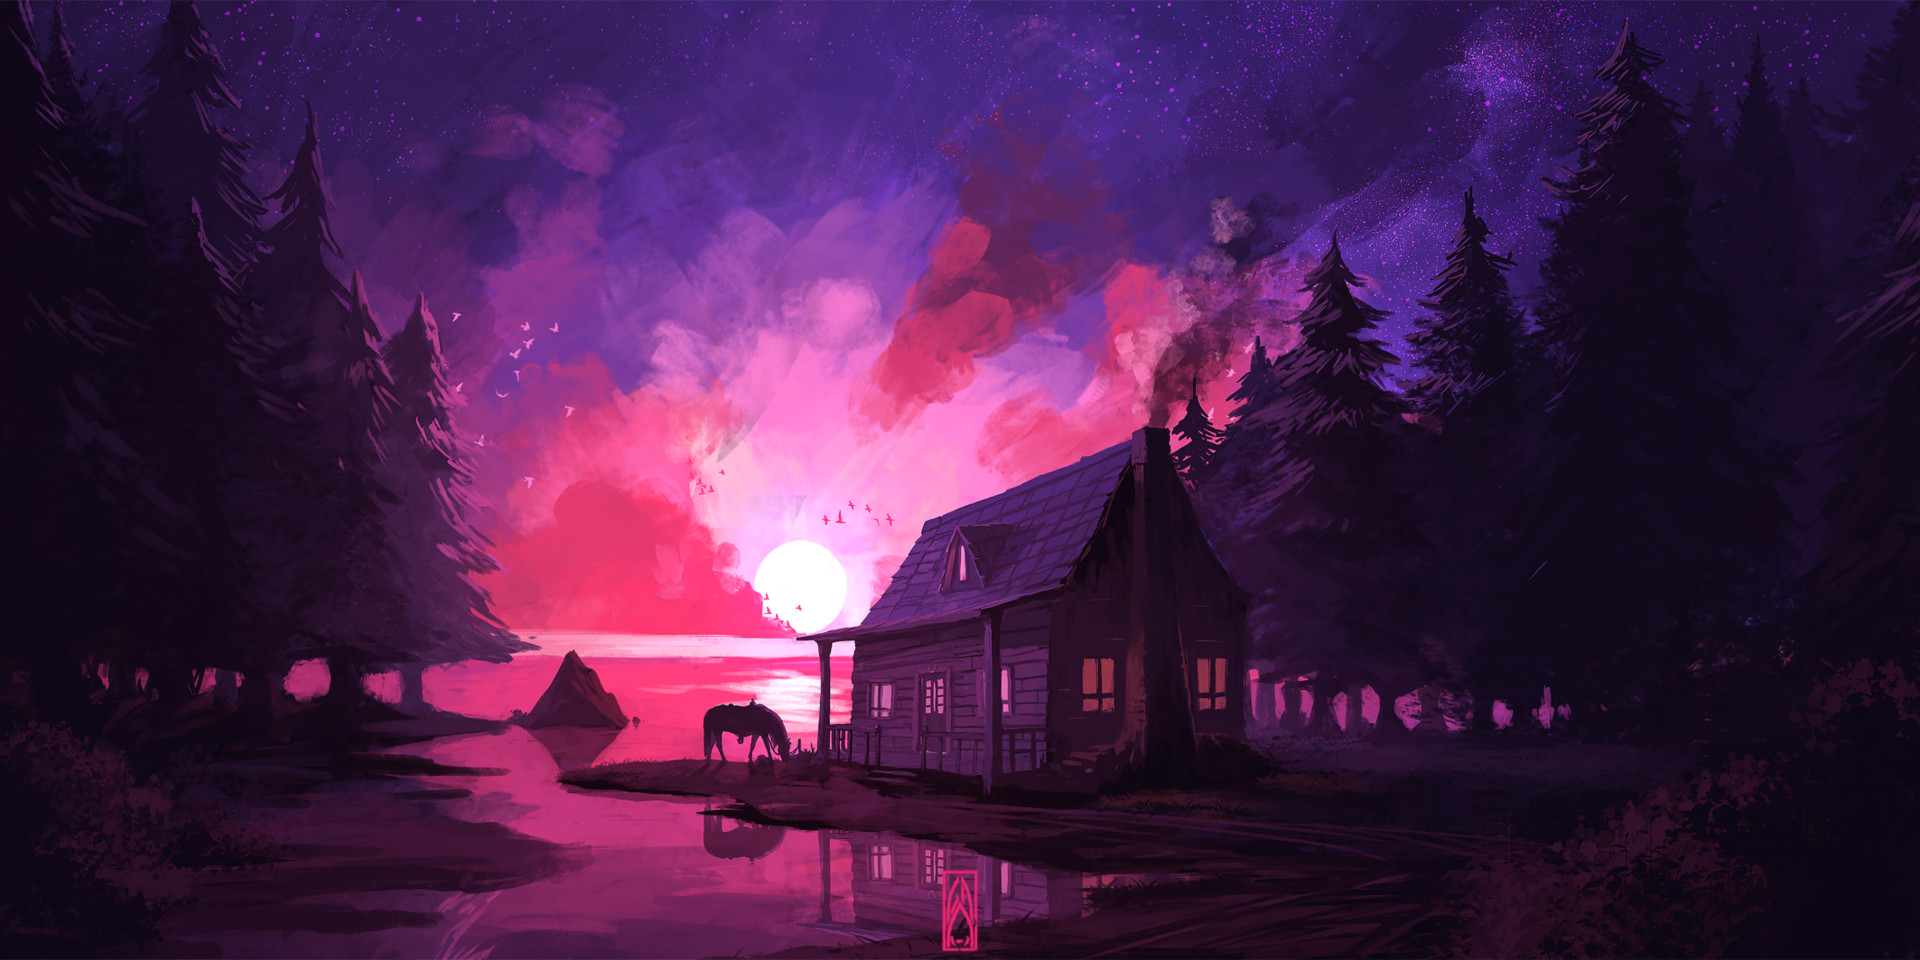 General 1920x960 Gustavo Arteaga concept art landscape night house forest purple pink lake water horse Moon road